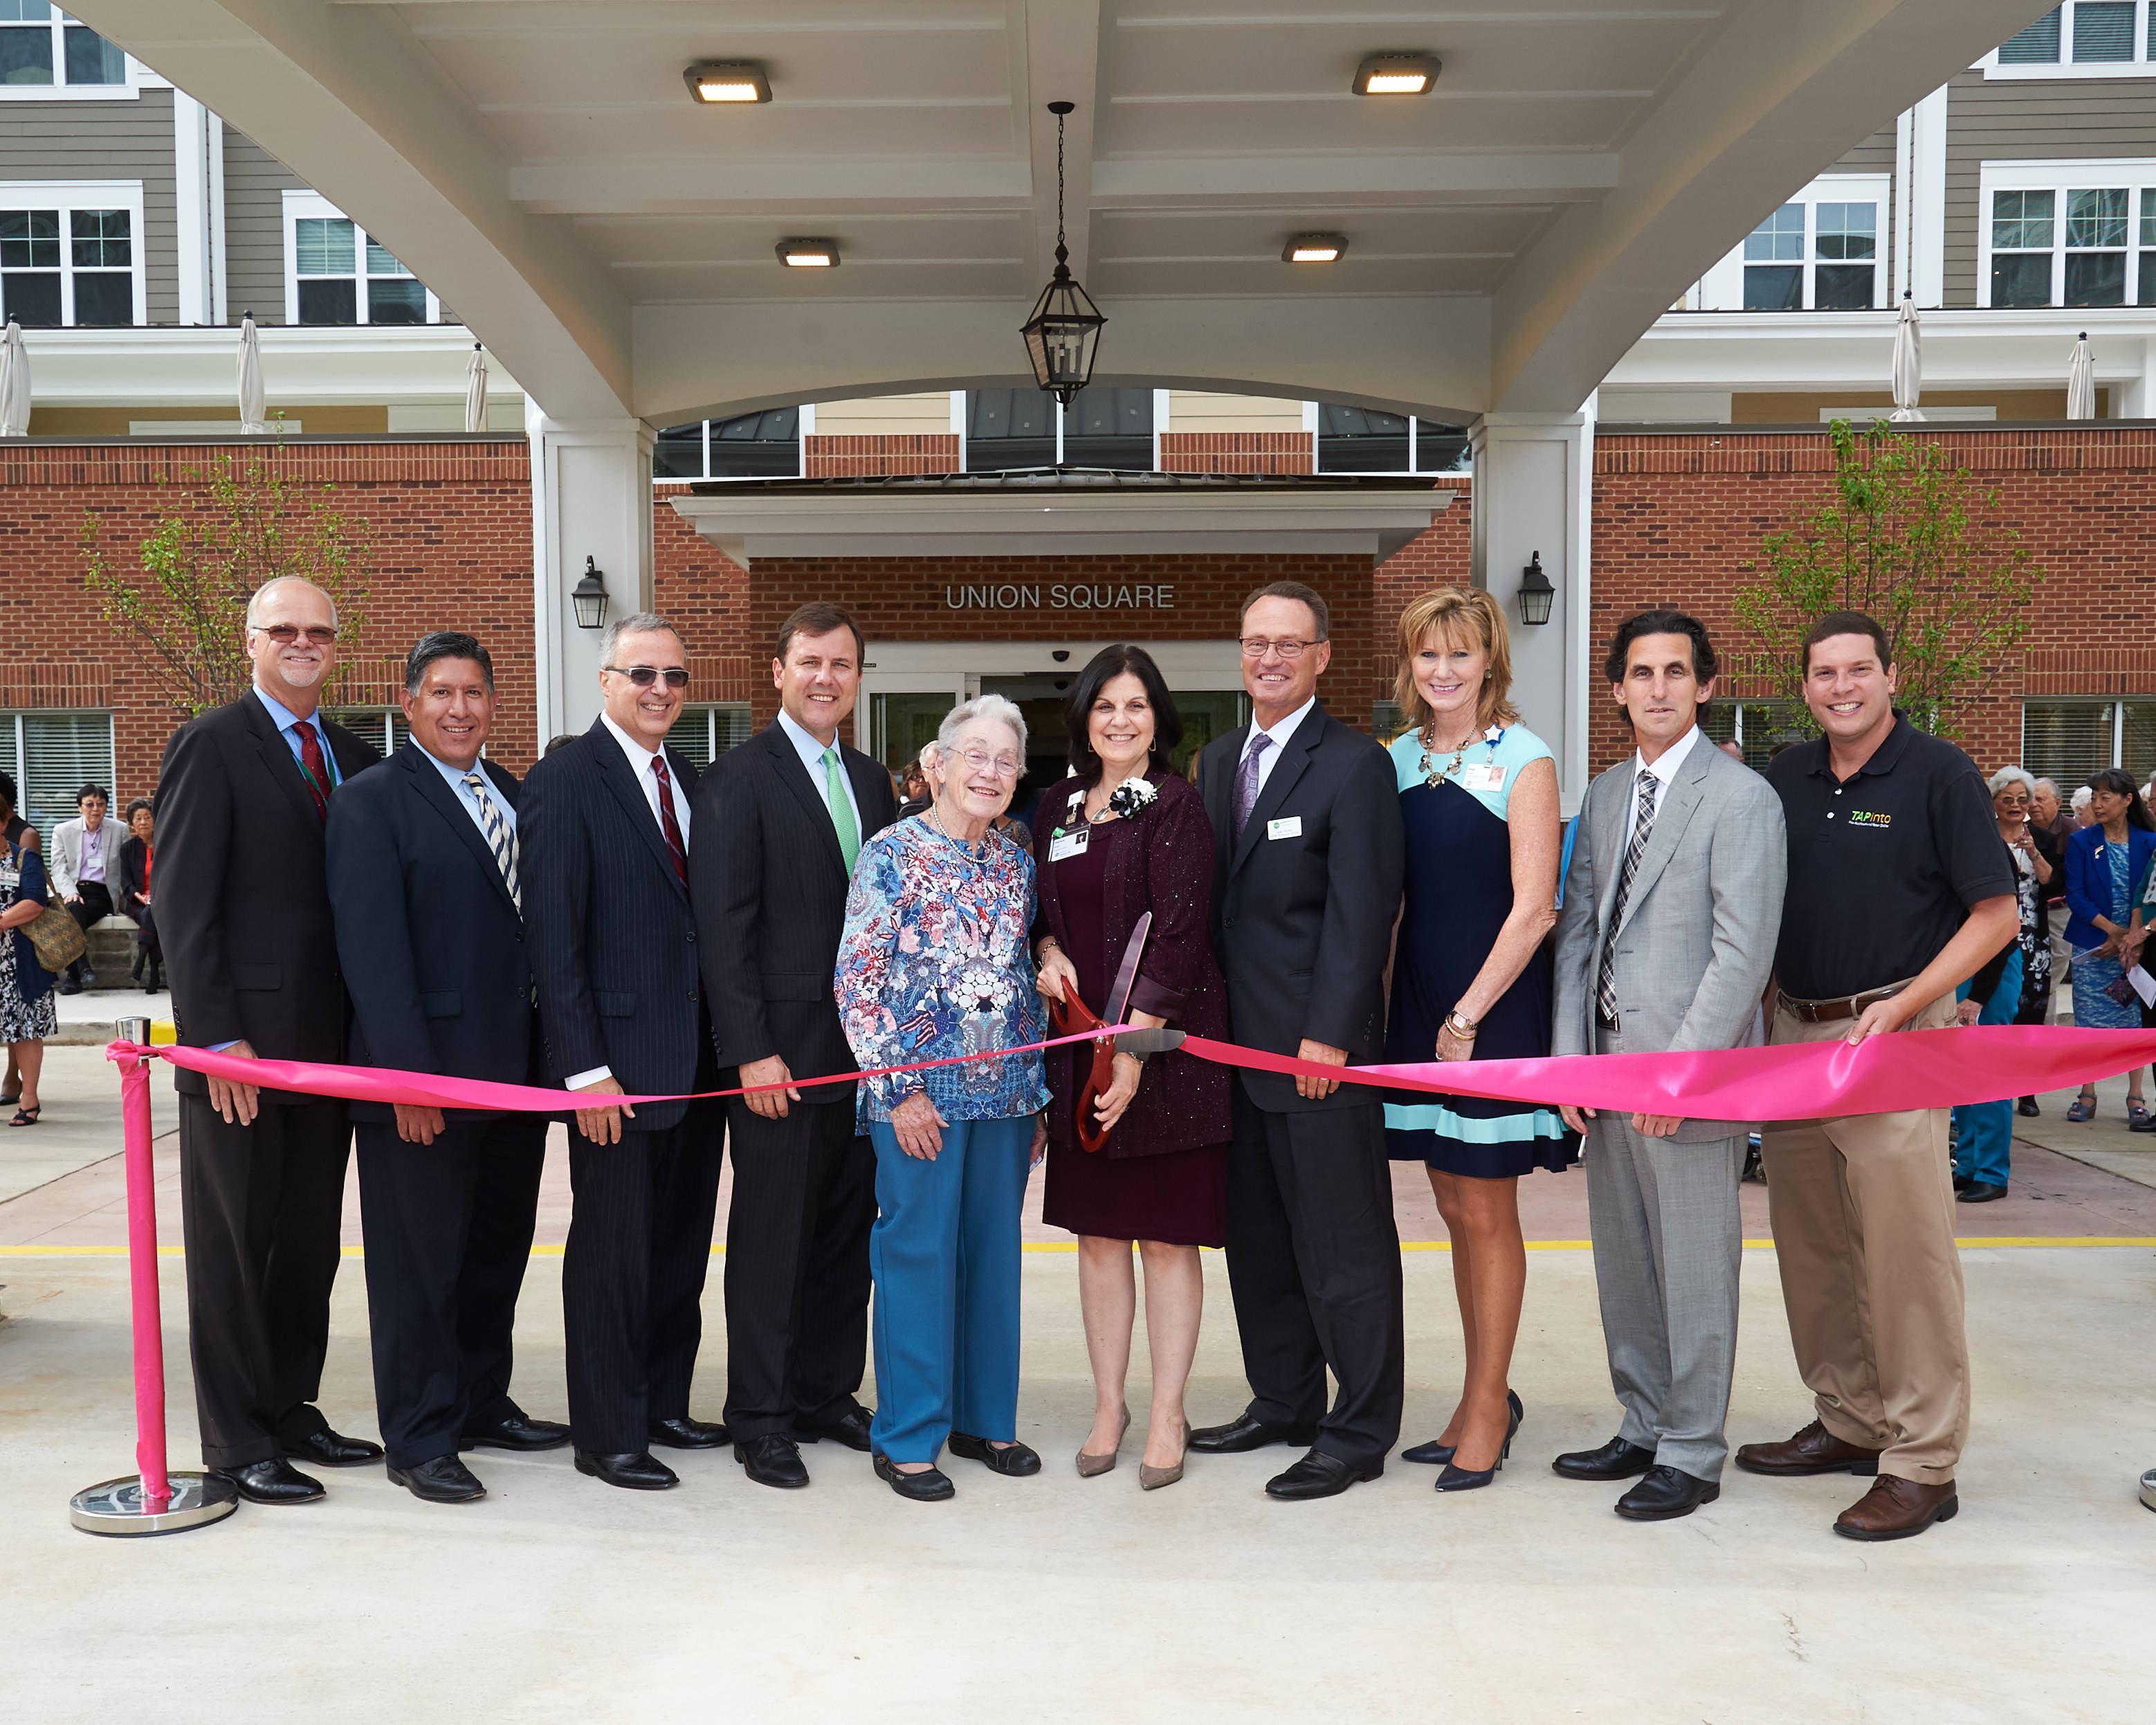 c4da8759eedc1f12493e_Lantern_Hill_Ribbon_Cutting.jpg